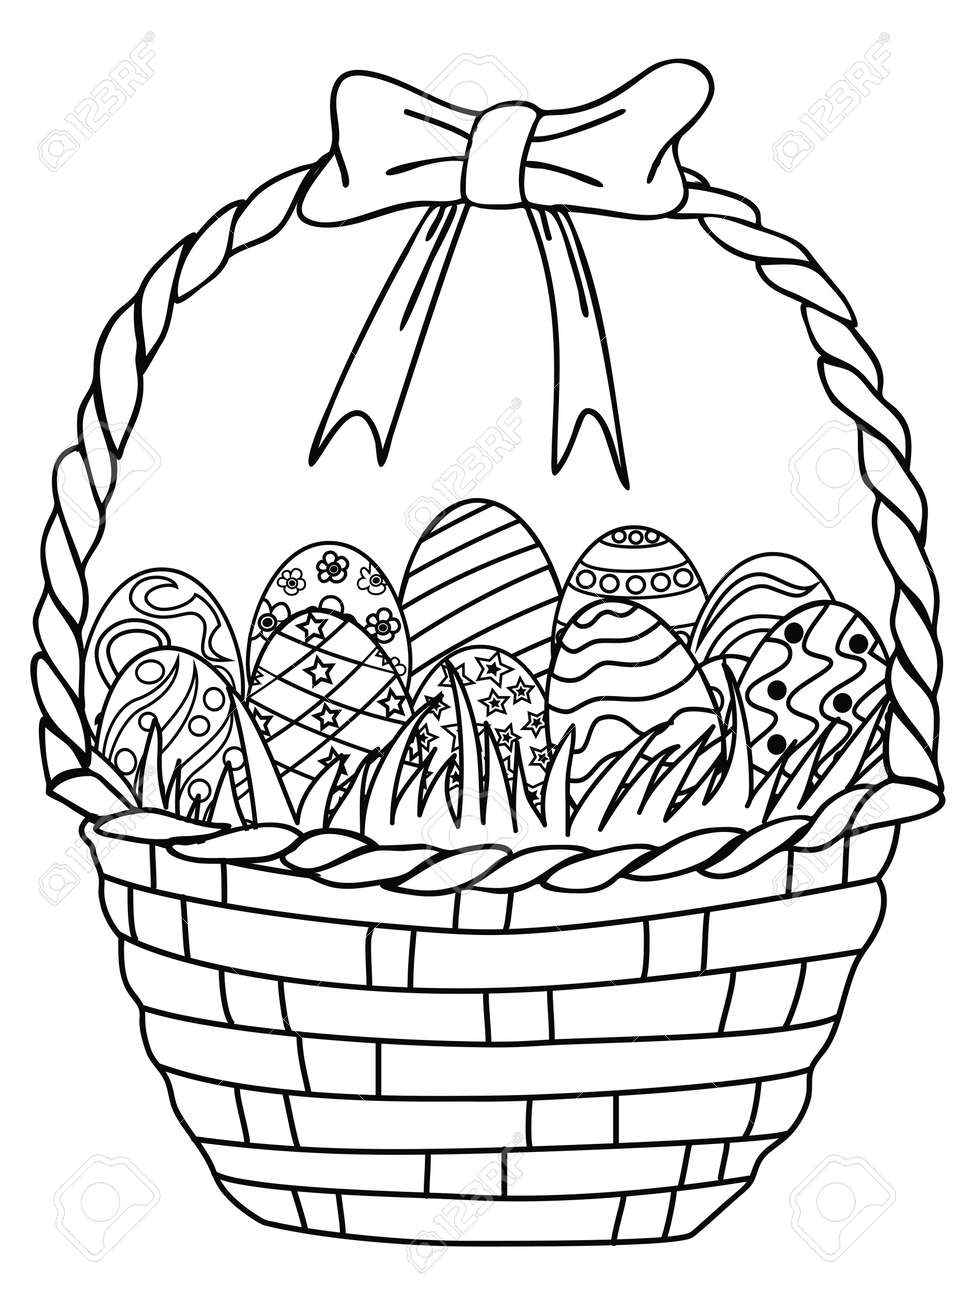 isolated hand drawn basket of easter eggs outline coloring page